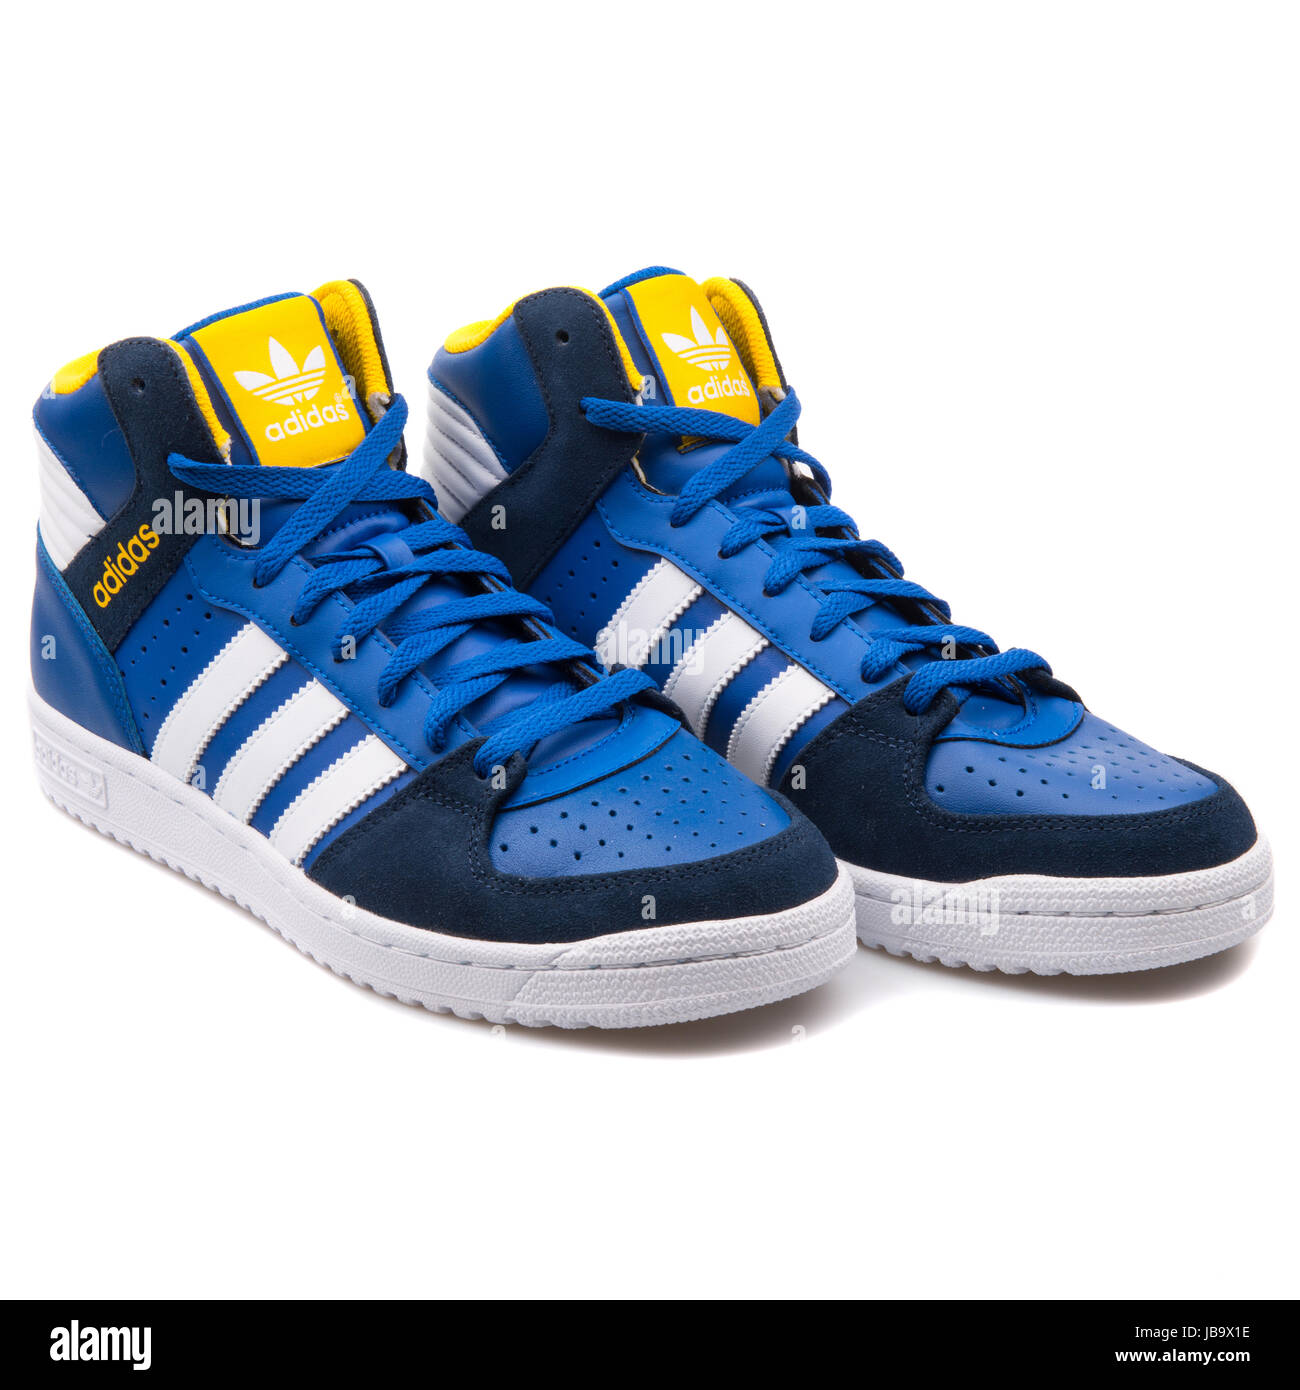 Adidas Pro Play 2 Blue, White and Yellow Men's Sports Sneakers - B35364 - Stock Image